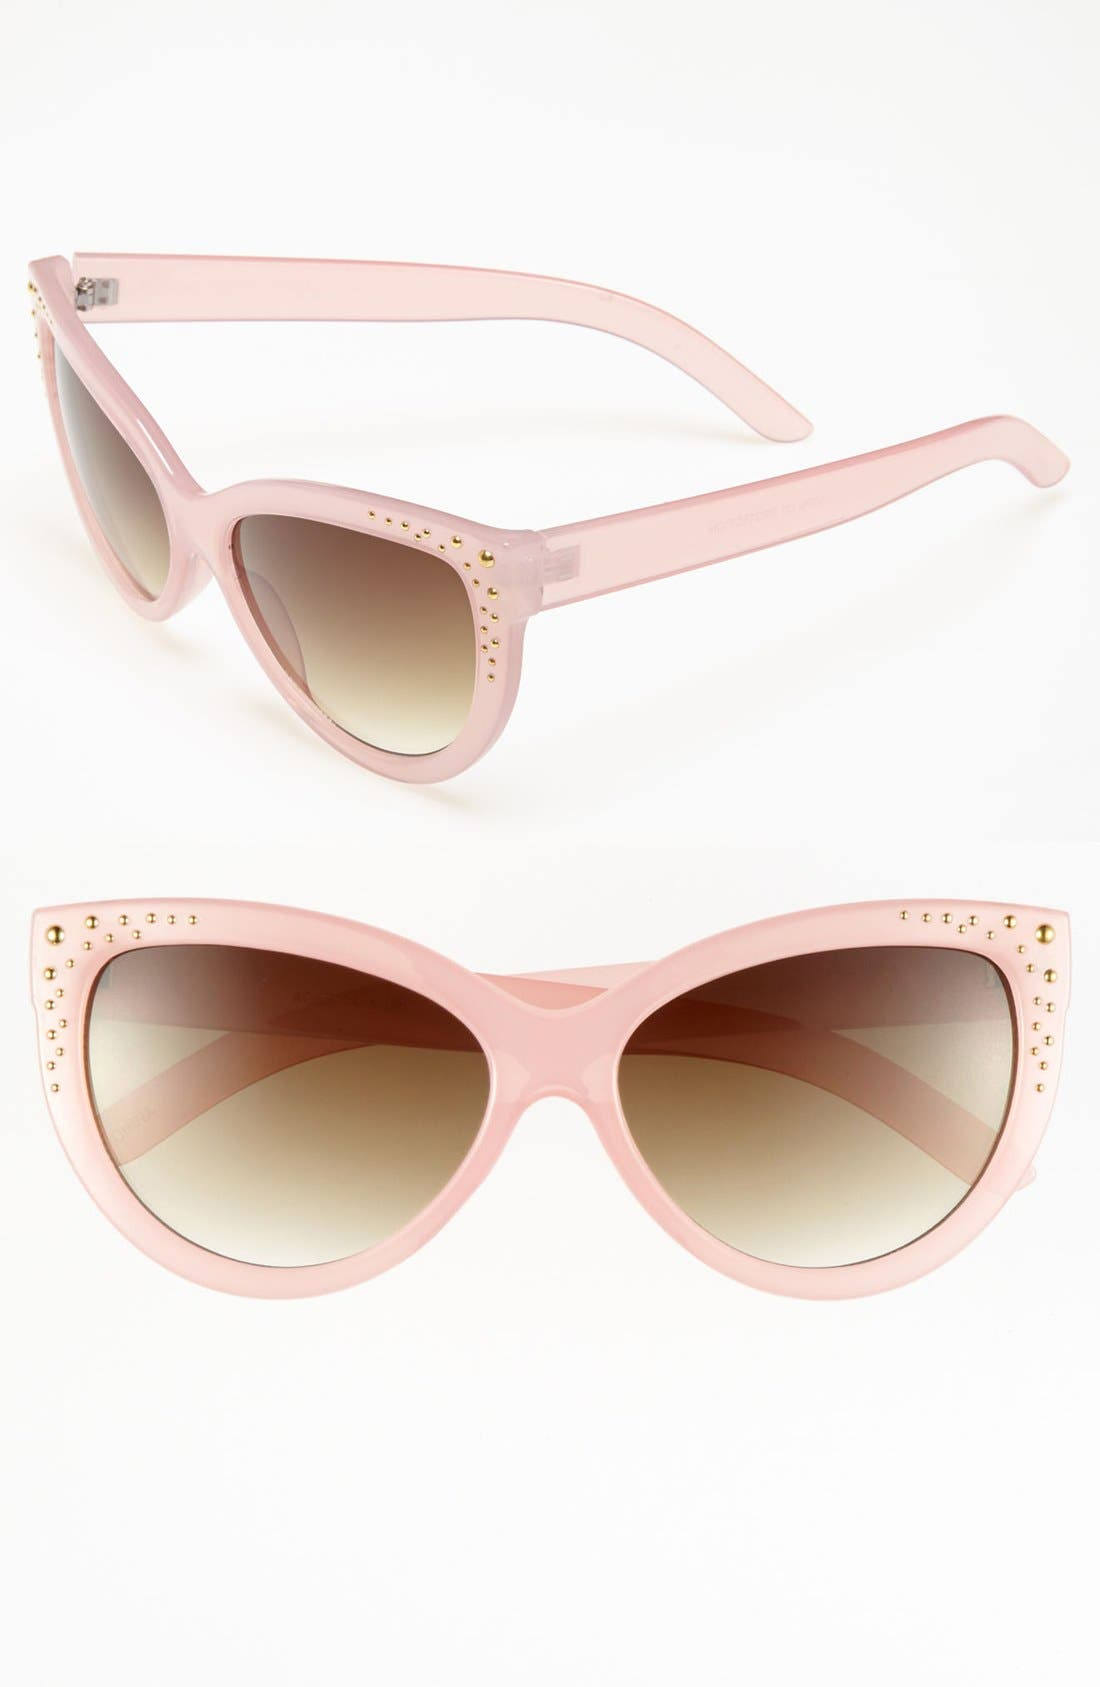 Main Image - FE NY 'Elvira' Sunglasses